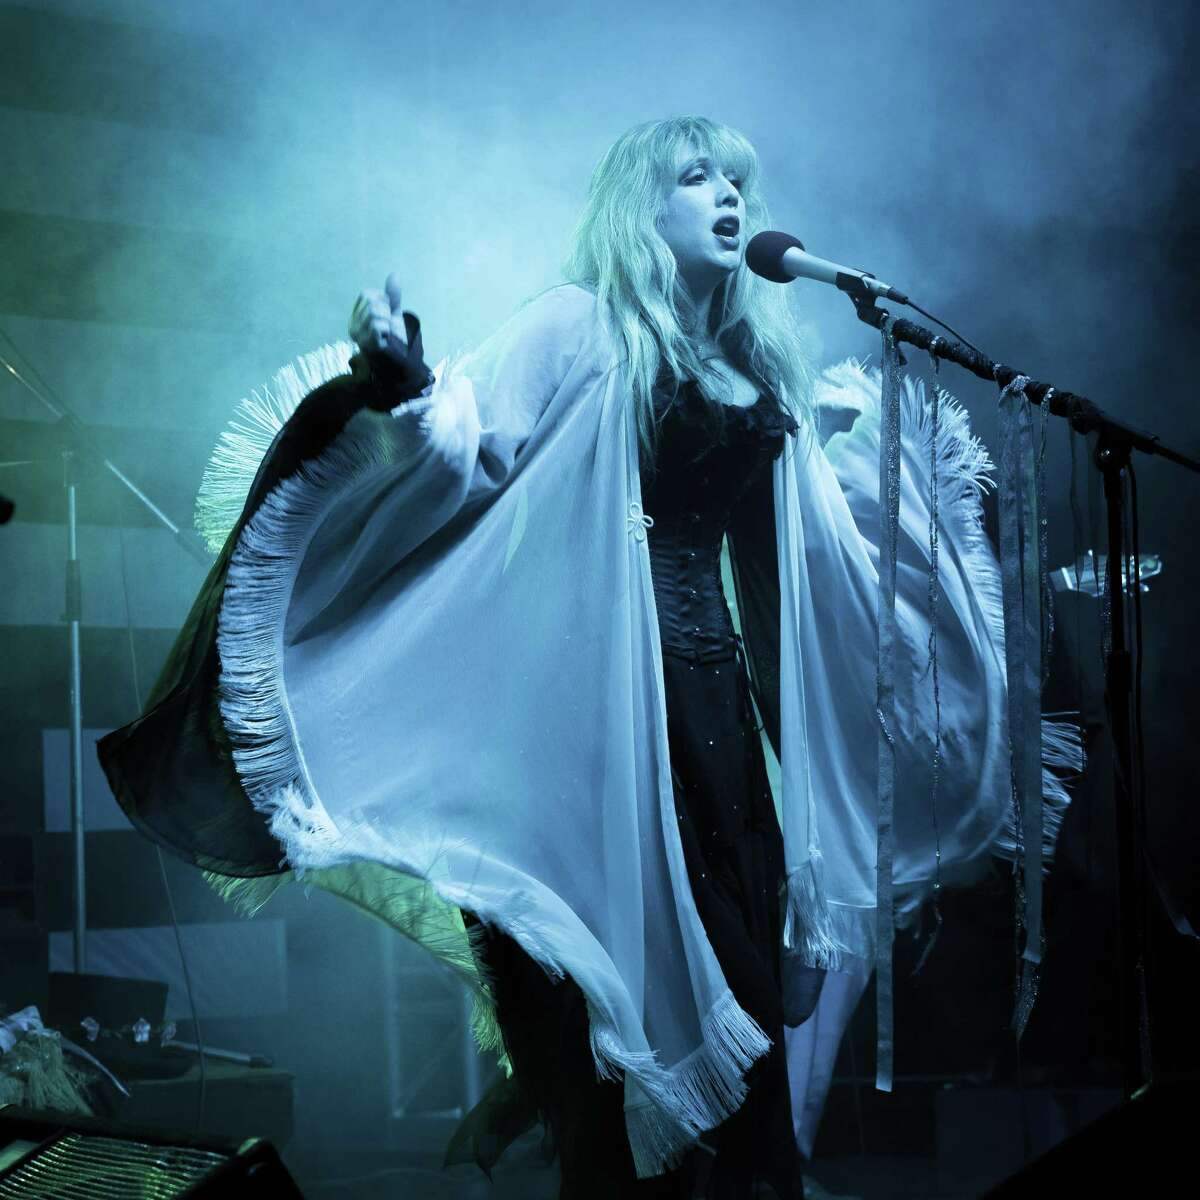 """Town Square Tribute: Stevie Nicks & Fleetwood Mac Cover is scheduled for 7:30-9:30 p.m. Saturday, Sept. 25, at Sugar Land Town Square at Highway 6 and U.S. Highway 59. """"Nightbird"""" captures the fire, energy, and spirit of Fleetwood Mac and Stevie Nicks with their spot-on tribute performances. Lead vocalist Brooke Alyson sounds like and bears a resemblance to Stevie Nicks. For more information go to https://tinyurl.com/4t8rytr."""